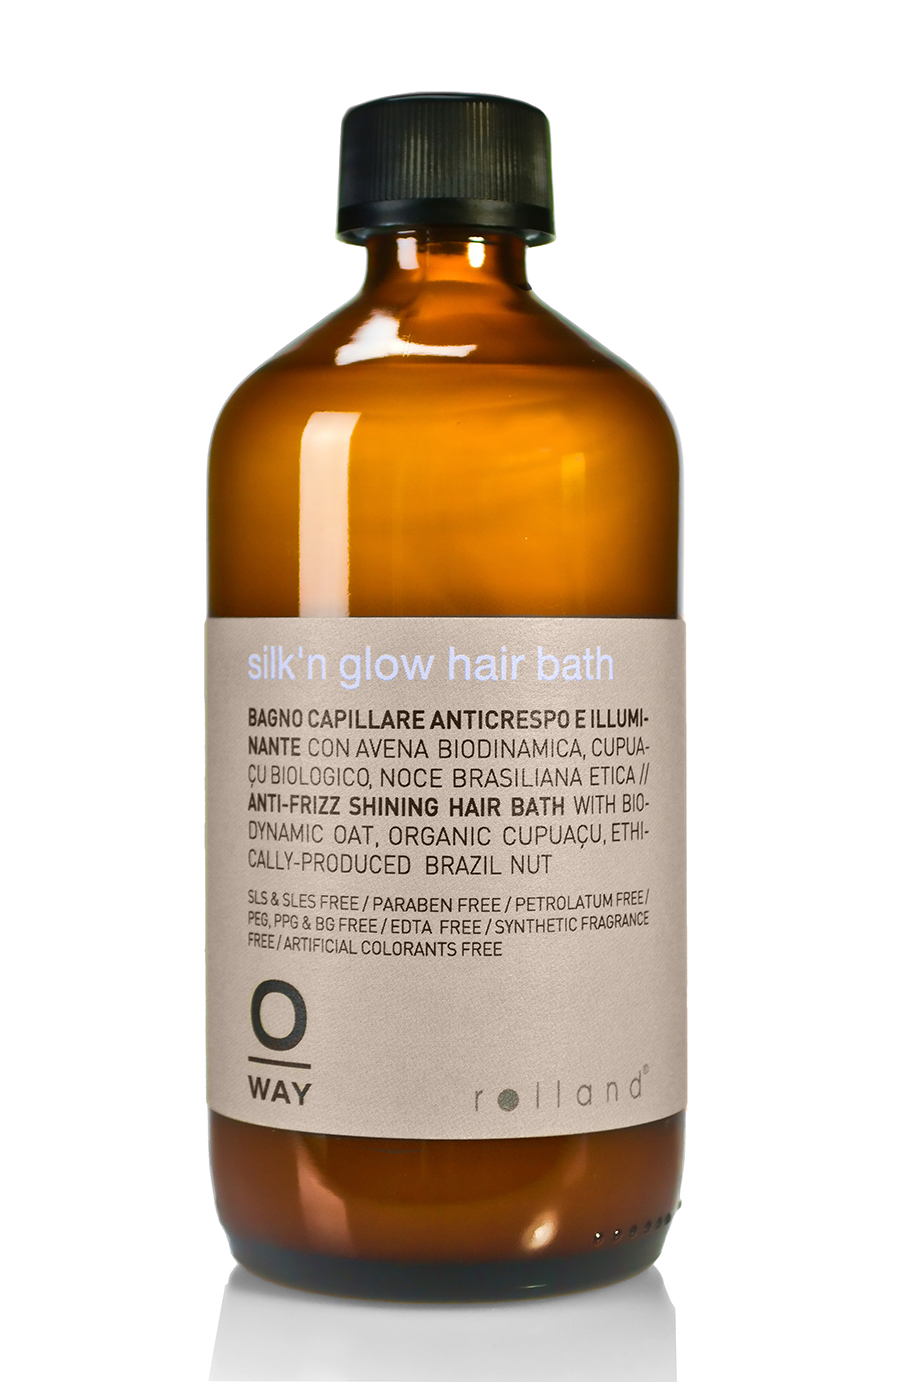 Oway SilknGlow Hair bath